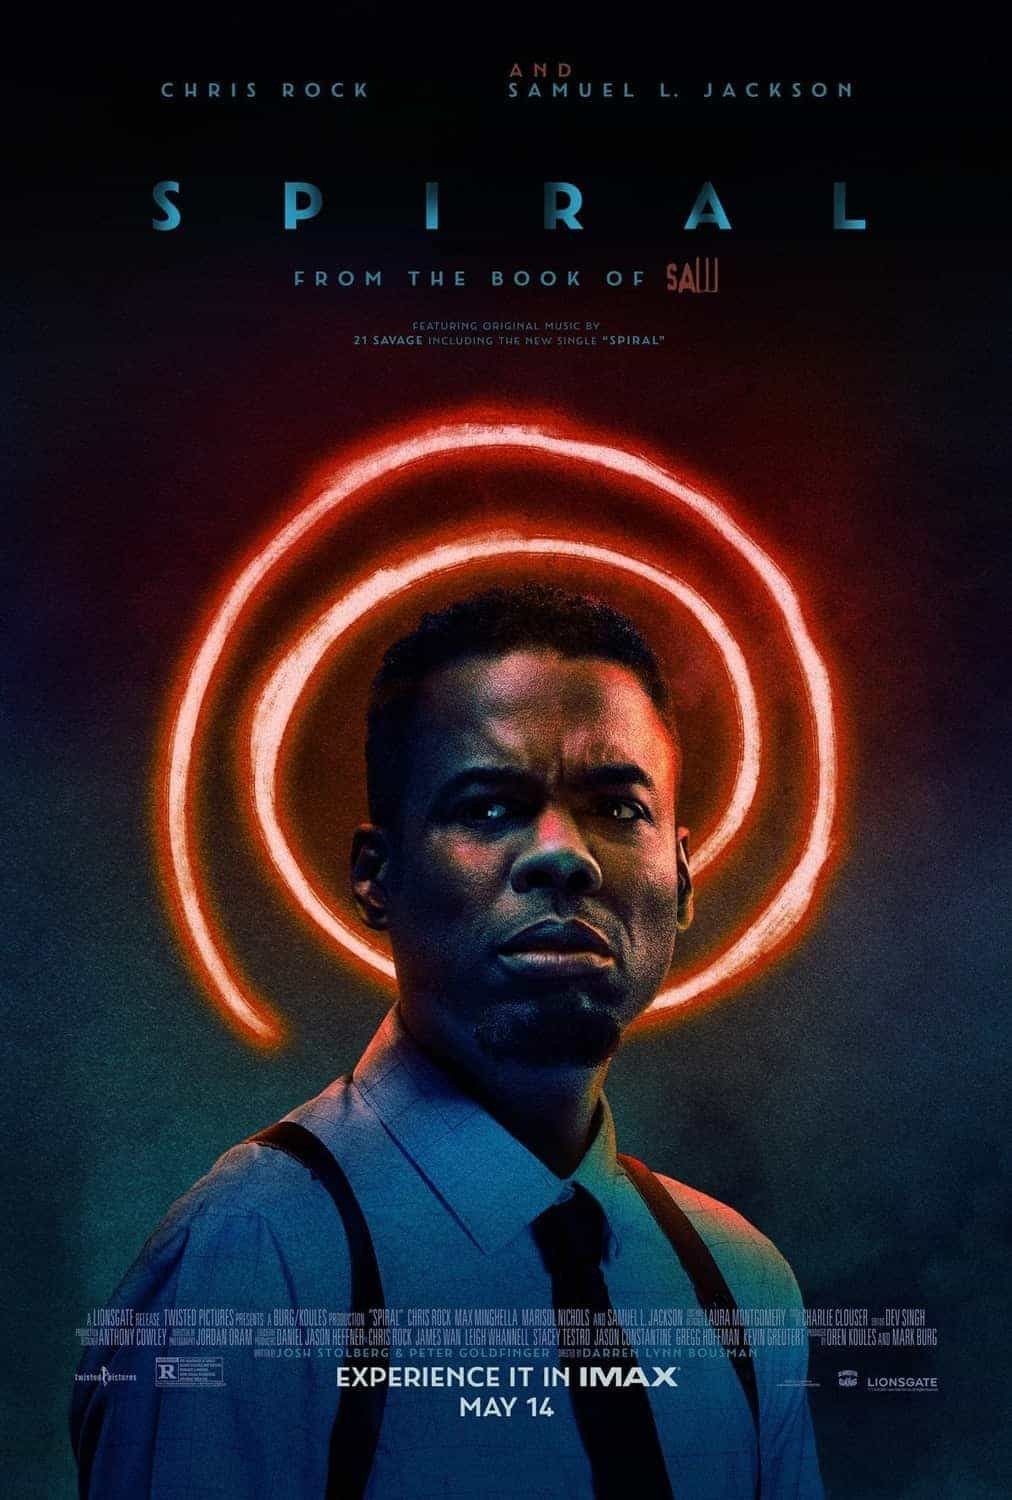 First trailer for the Saw reboot project headed up by Chris Rock - Spiral: From The Book Of Saw